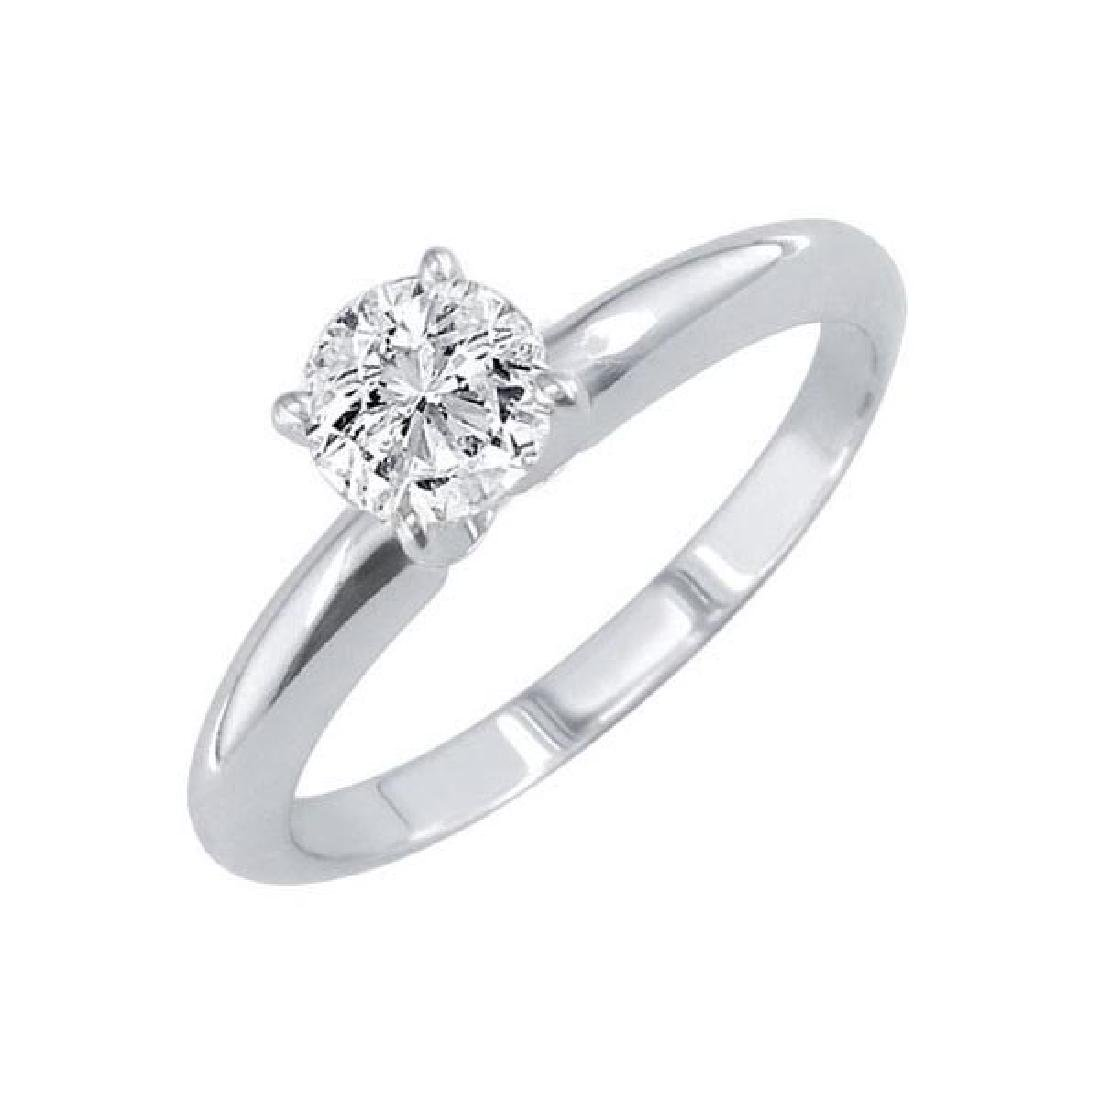 Certified 1.01 CTW Round Diamond Solitaire 14k Ring G/I